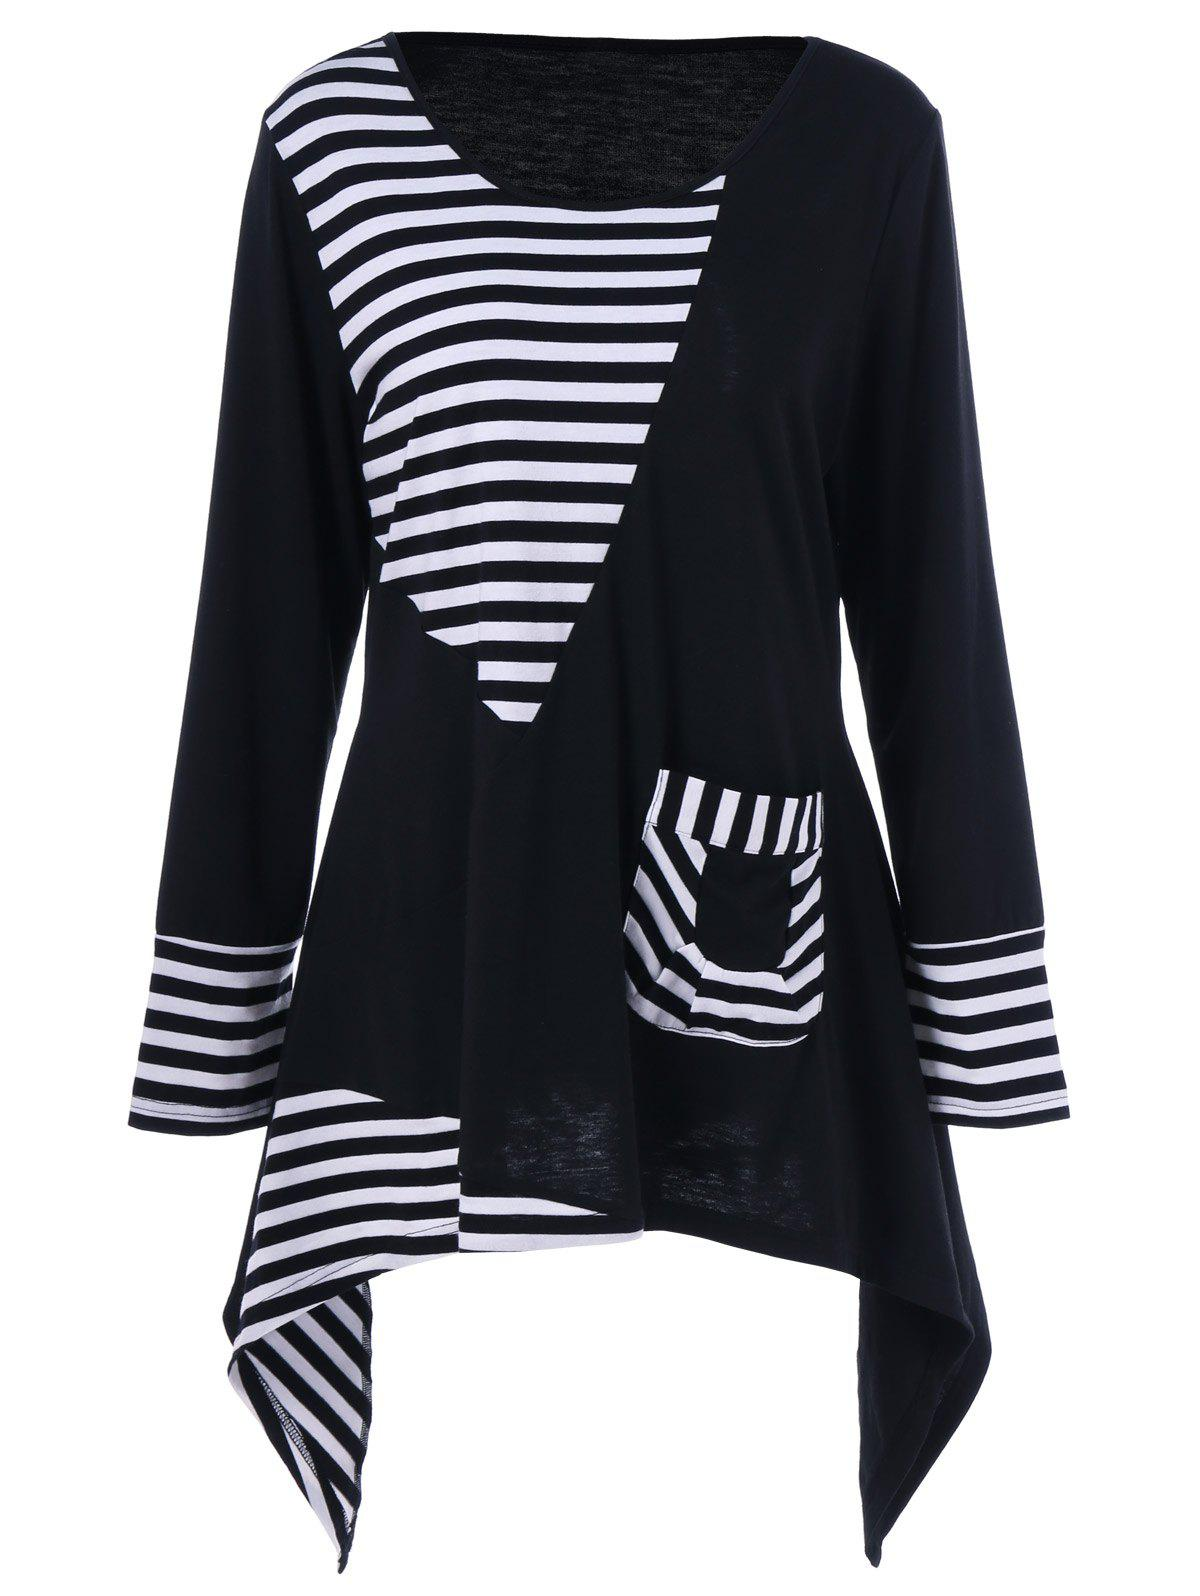 Plus Size Asymmetric Striped Tunic T-ShirtWOMEN<br><br>Size: XL; Color: WHITE AND BLACK; Material: Polyester,Spandex; Shirt Length: Long; Sleeve Length: Full; Collar: Scoop Neck; Style: Fashion; Season: Fall,Spring; Embellishment: Pockets; Pattern Type: Striped; Weight: 0.3200kg; Package Contents: 1 x T-Shirt;